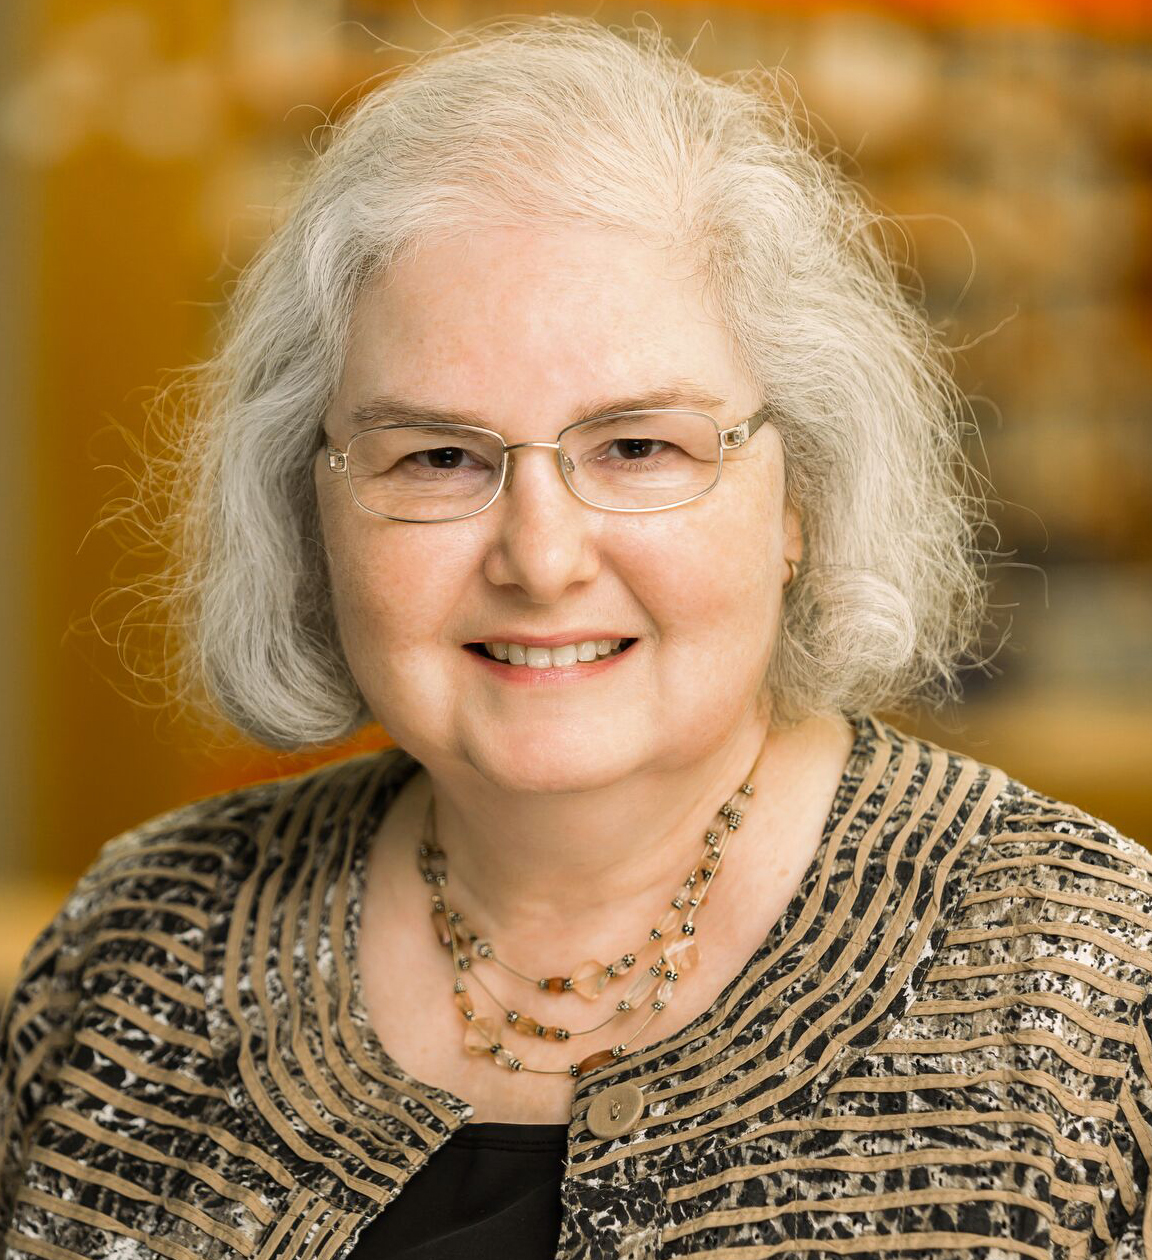 Sally Shelton, Ph.D., M.A., M.L.I.S.'s picture